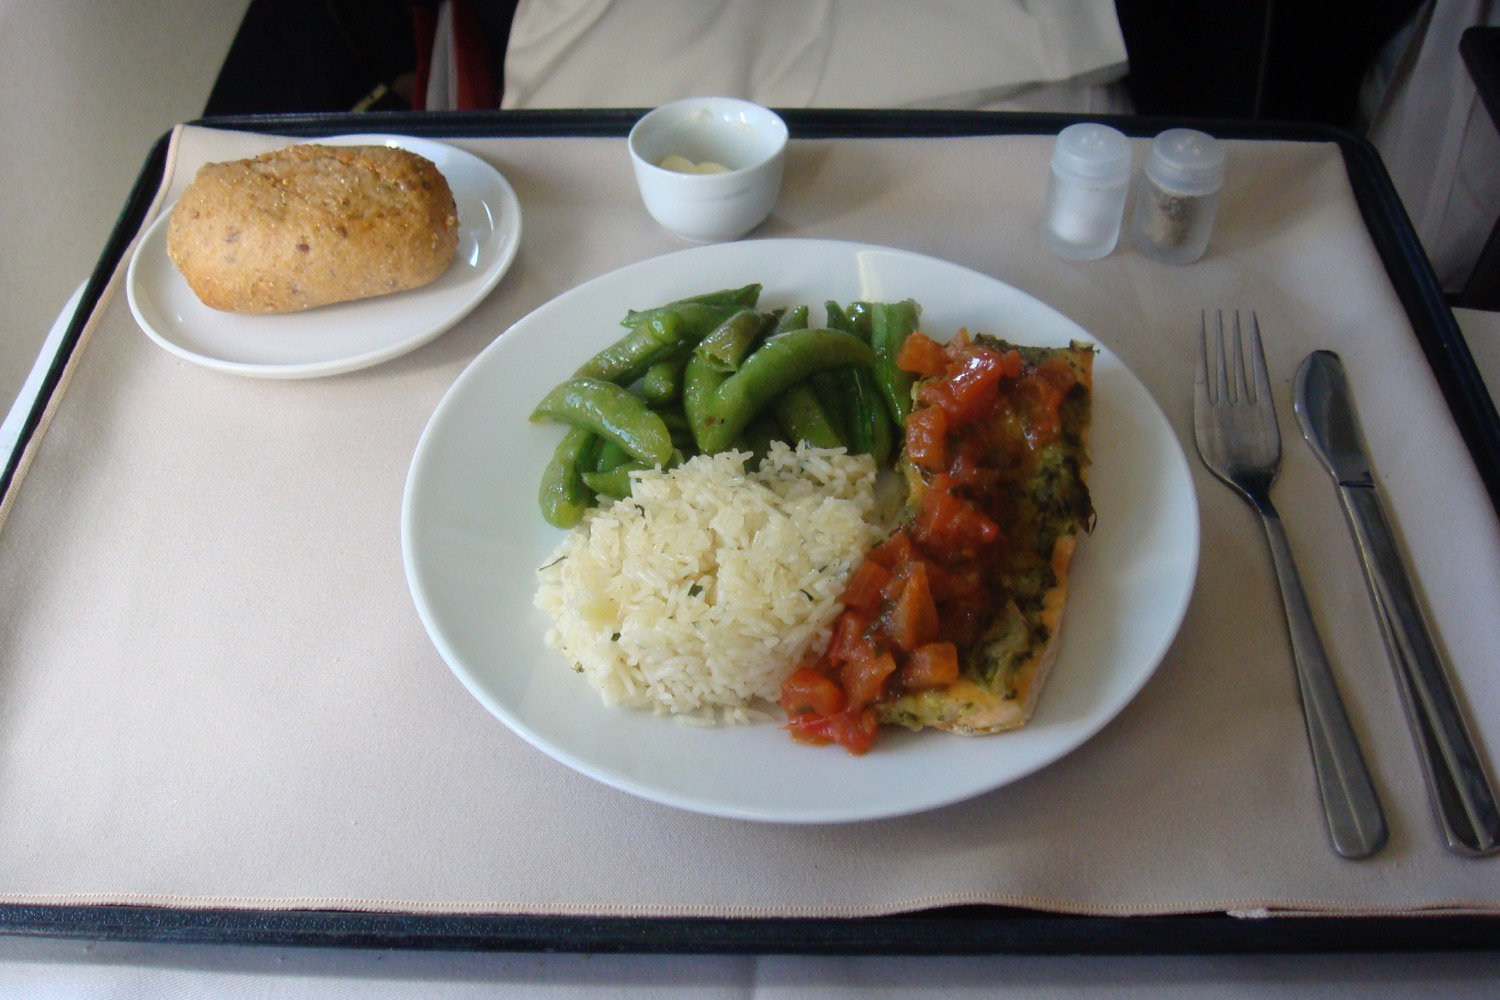 Representation of food served on airplane